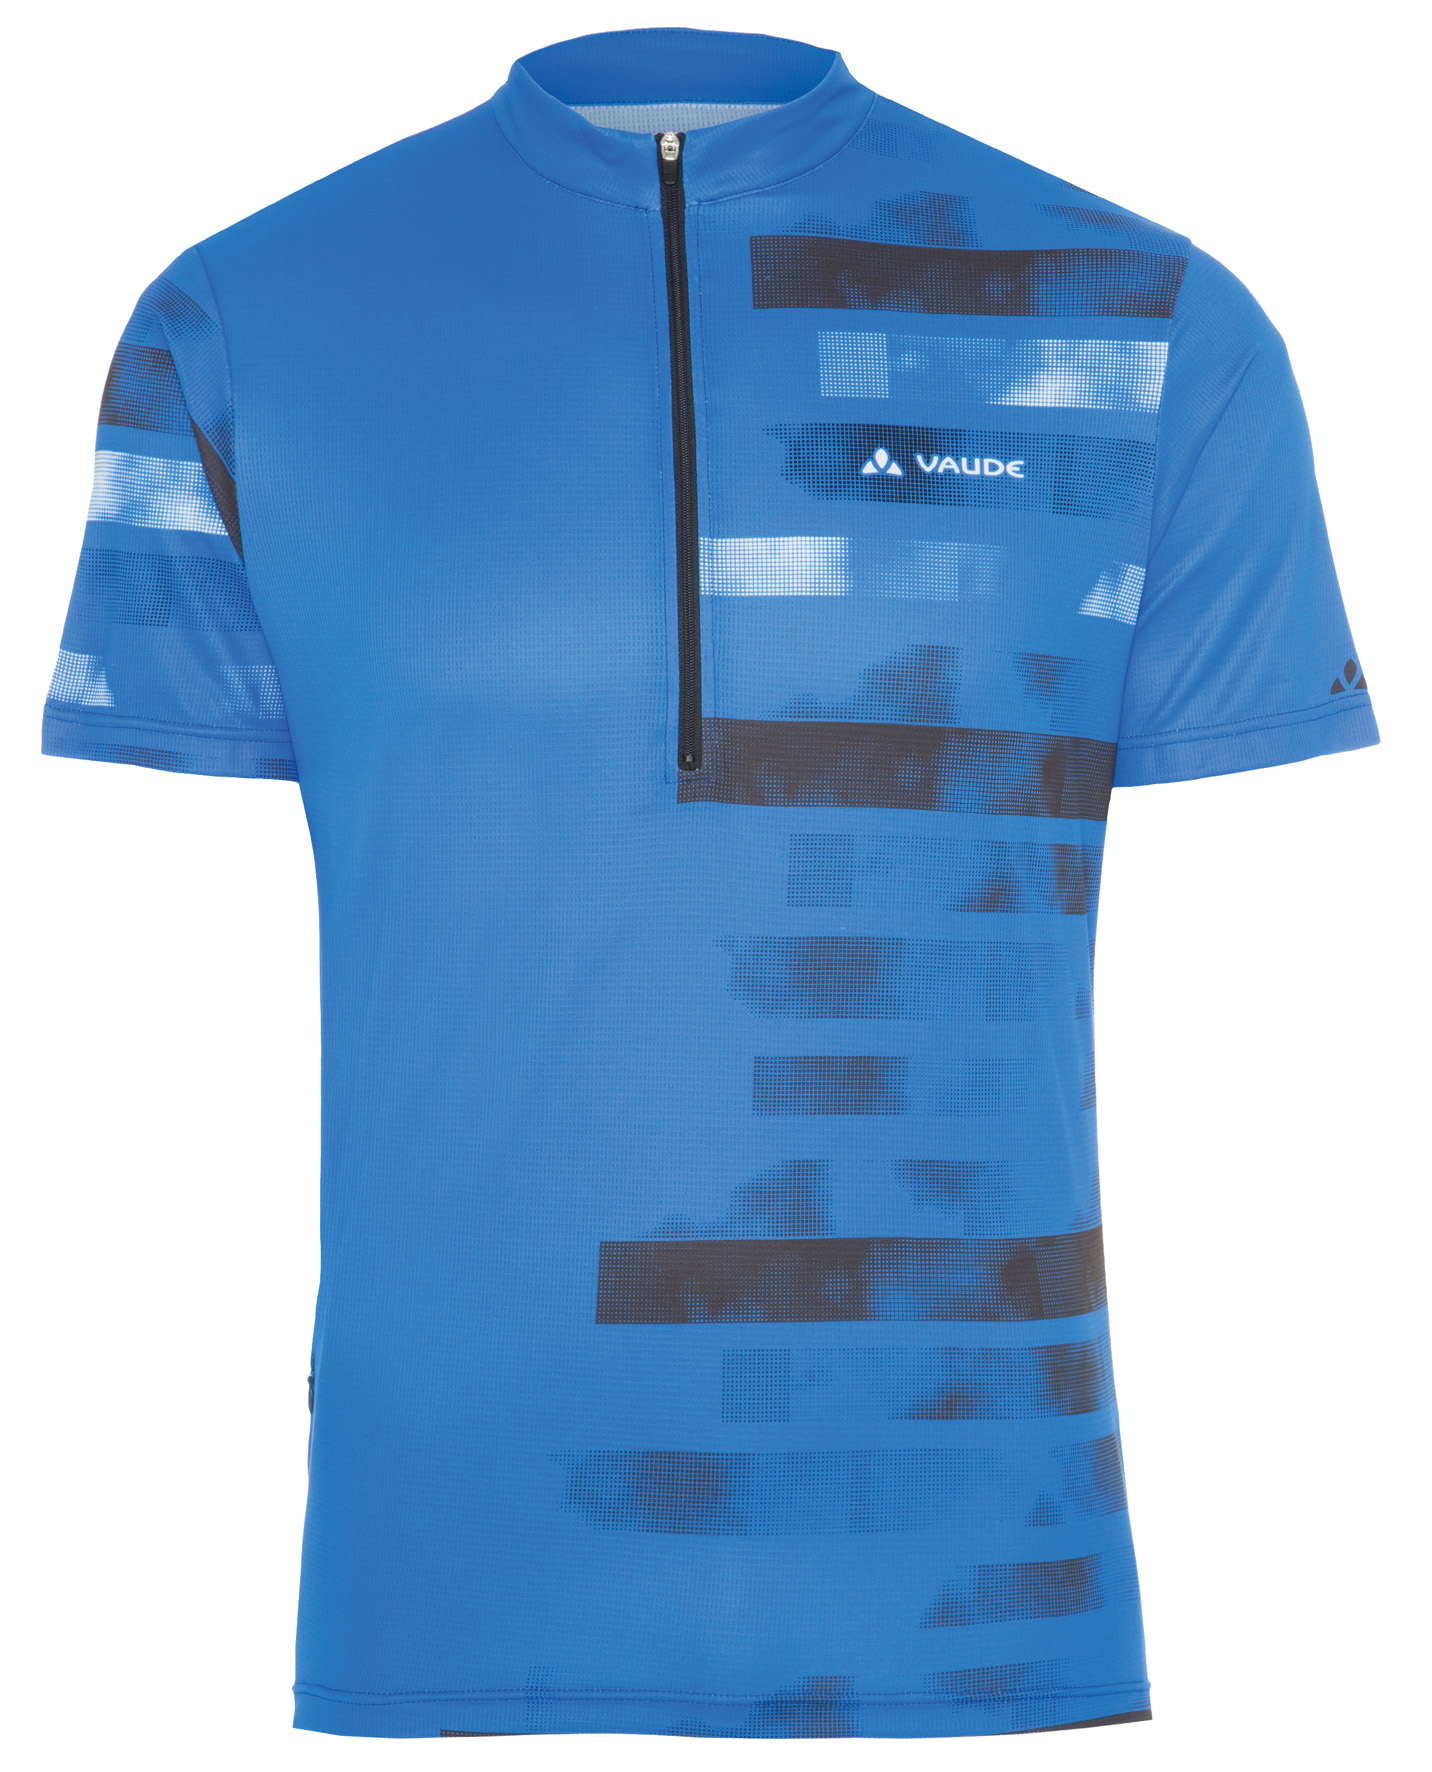 Men´s Tremalzo Shirt hydro blue Größe L - schneider-sports